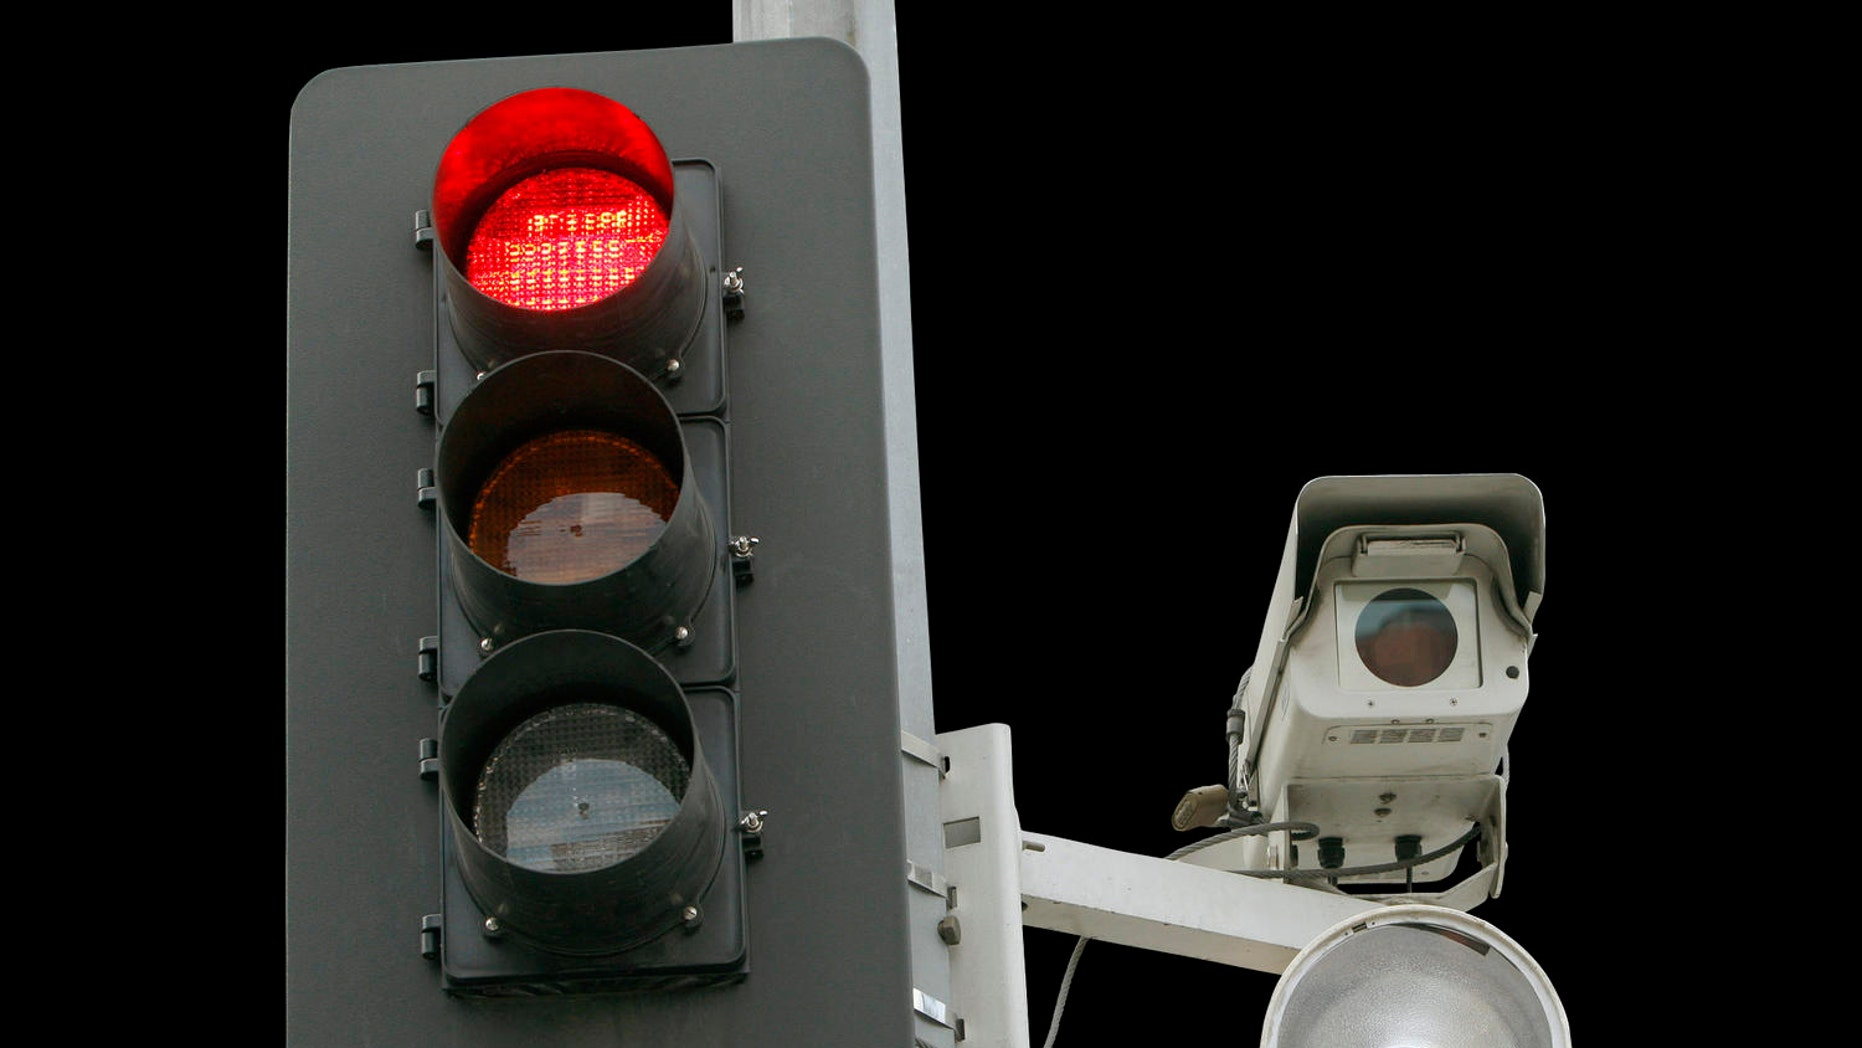 A red light camera setup is shown Wednesday Sept. 29, 2010 in Los Angeles. An audit by the Los Angeles city controller finds that red-light cameras haven't shown to improve public safety. The audit released Wednesday blames police for not adequately compiling statistics at the 32 intersections where red light cameras are installed, making it difficult to conclude whether they are effective. (AP Photo/Nick Ut)